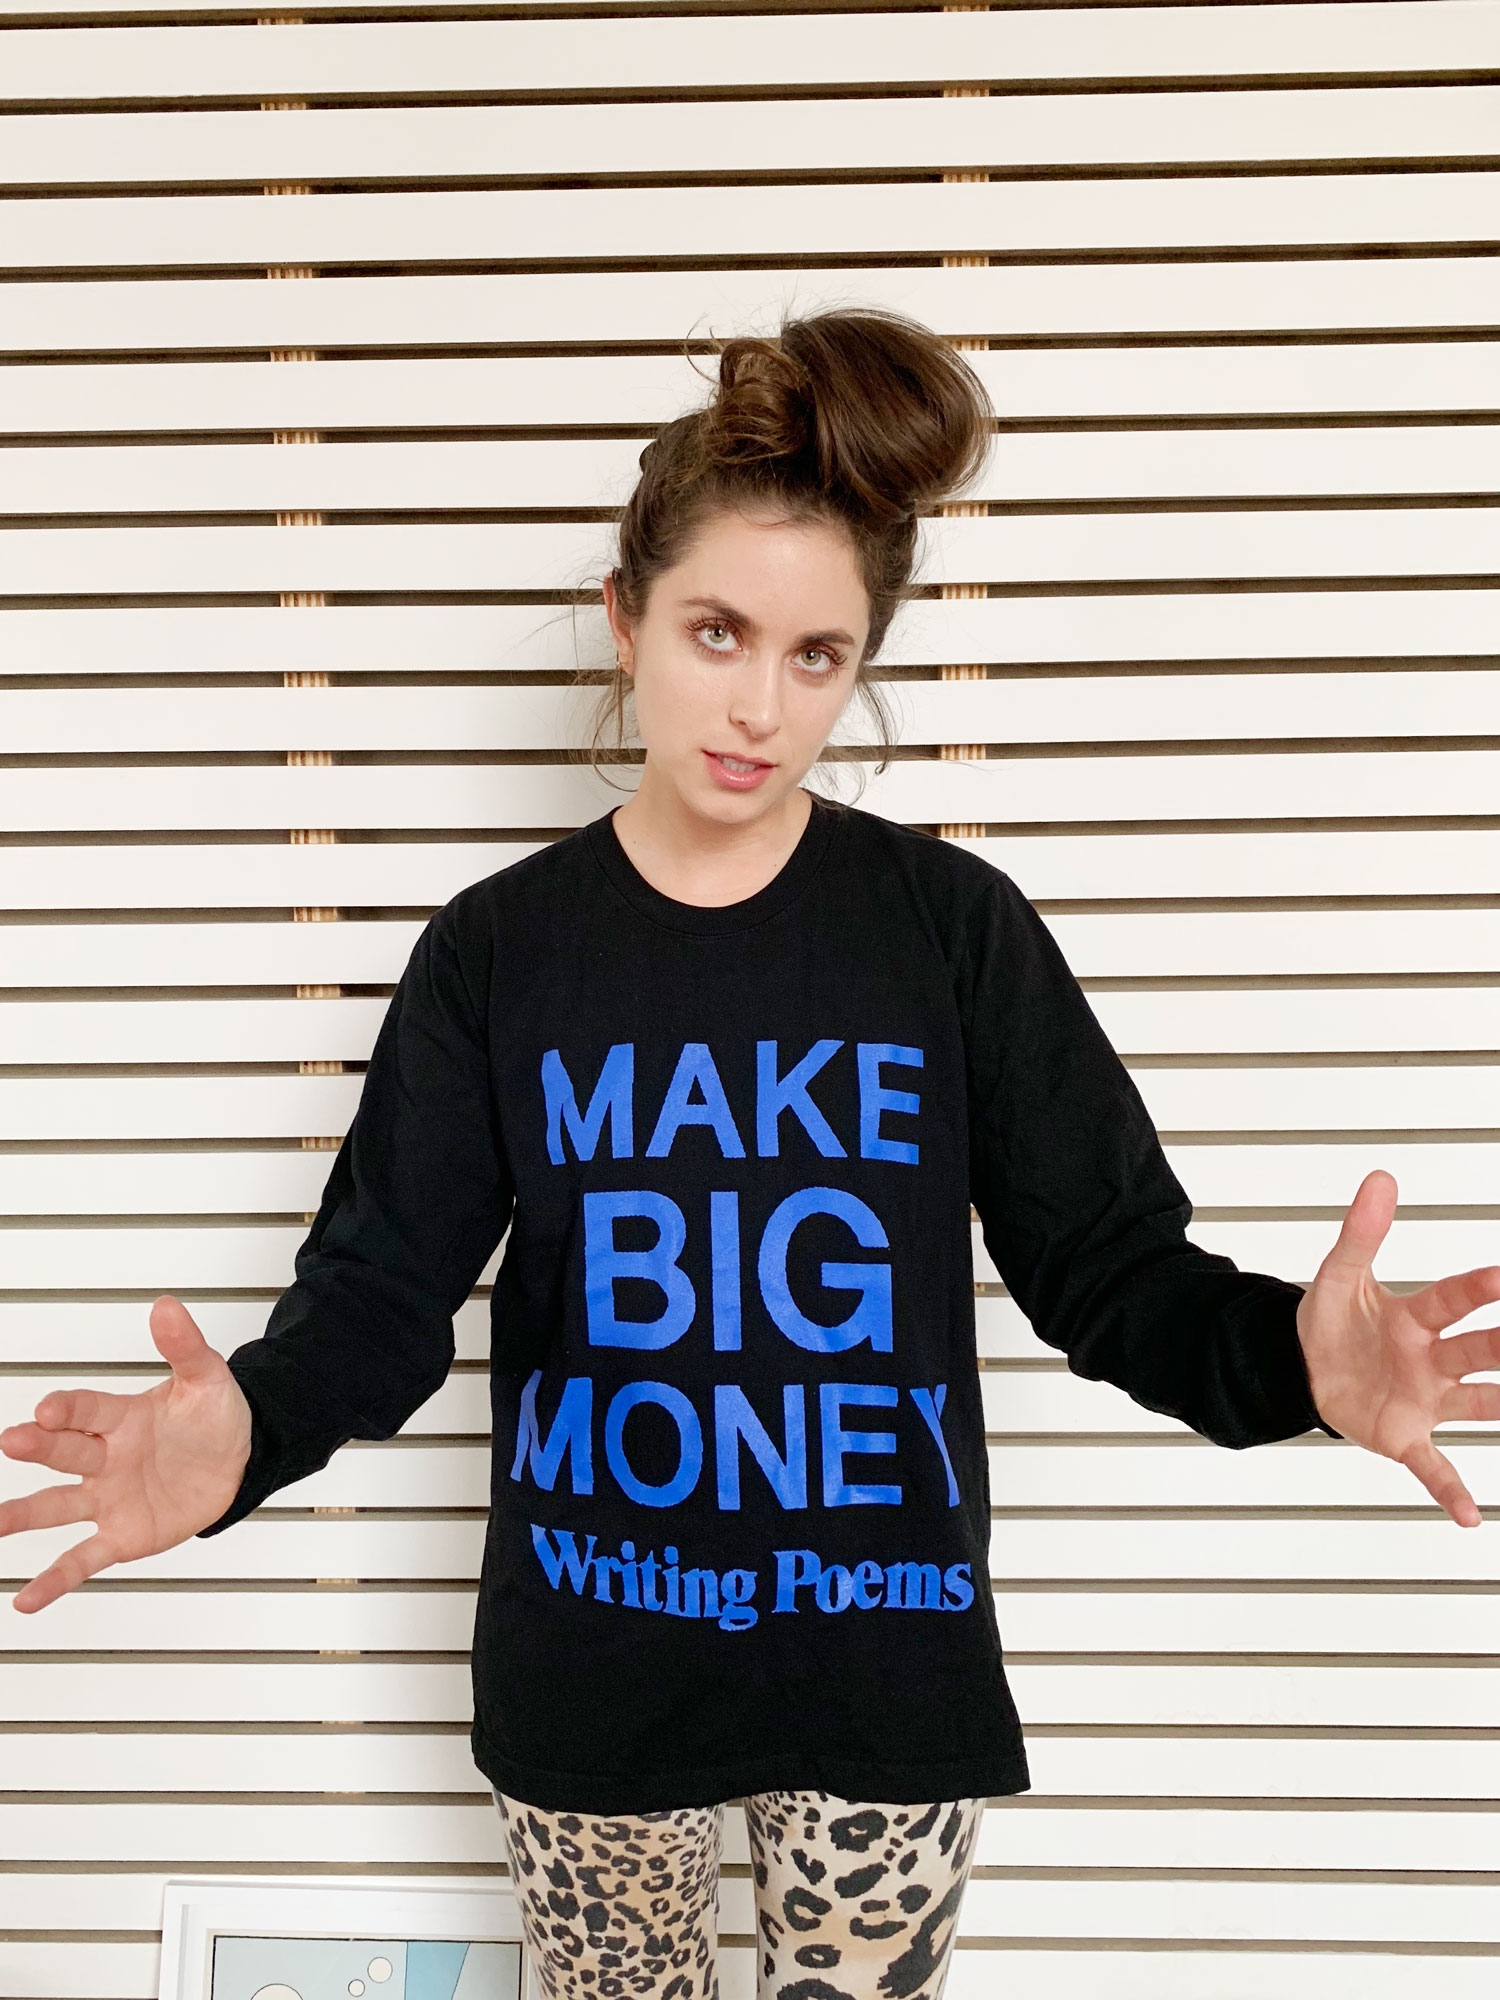 makebigmoney-molly-3.jpg